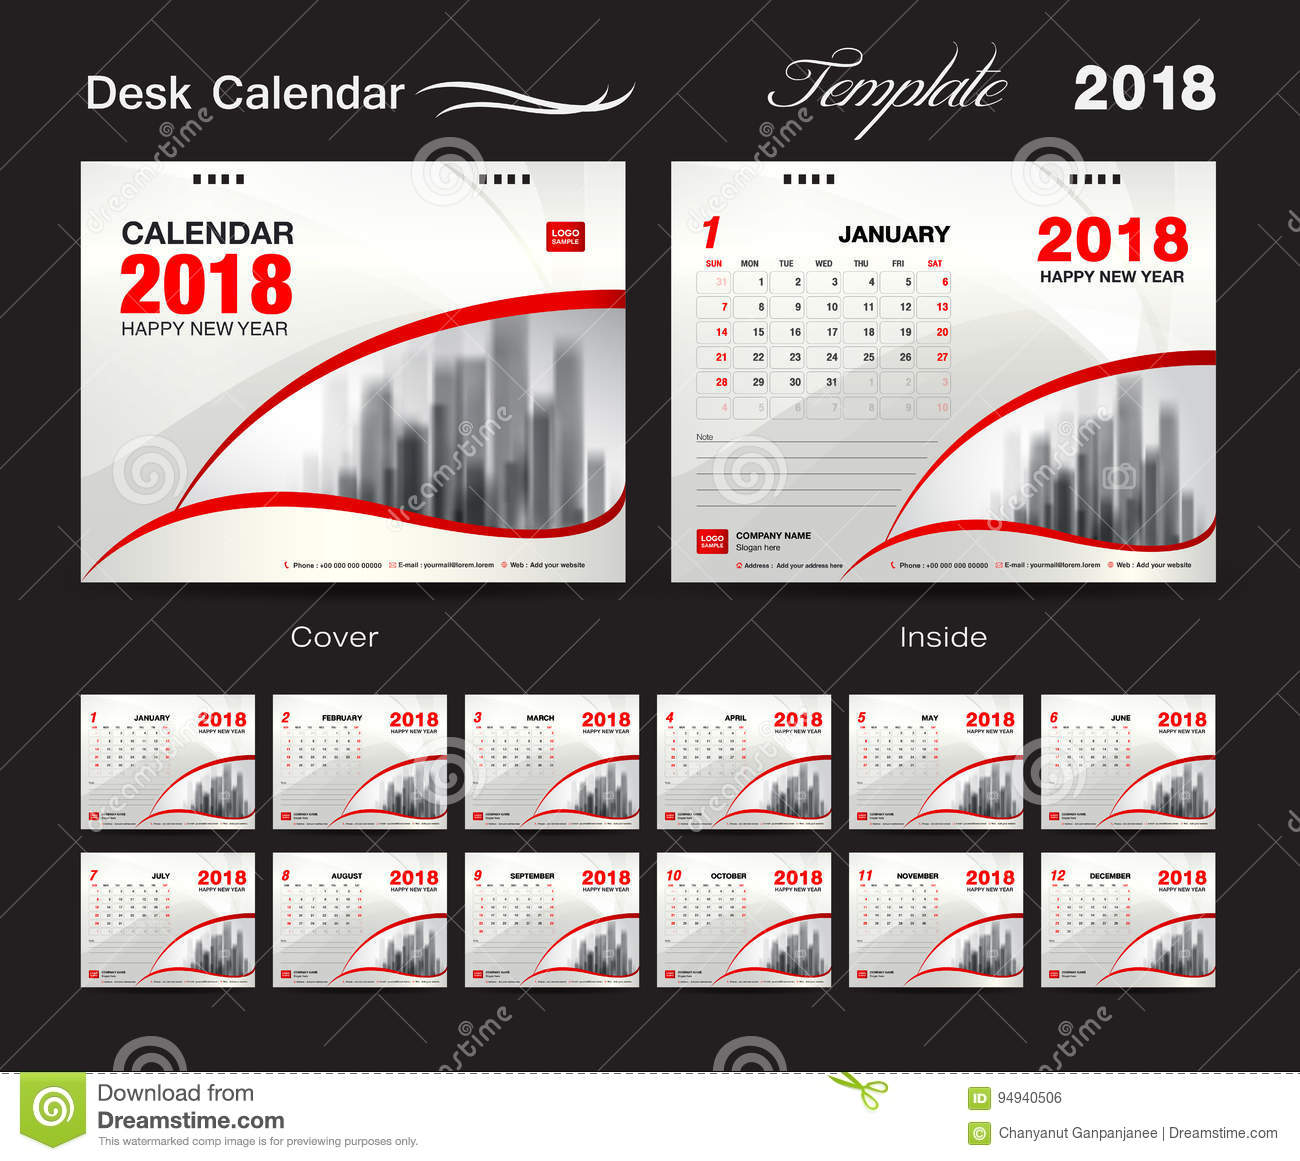 Calendar Design Free Vector : Desk calendar template design red cover set of